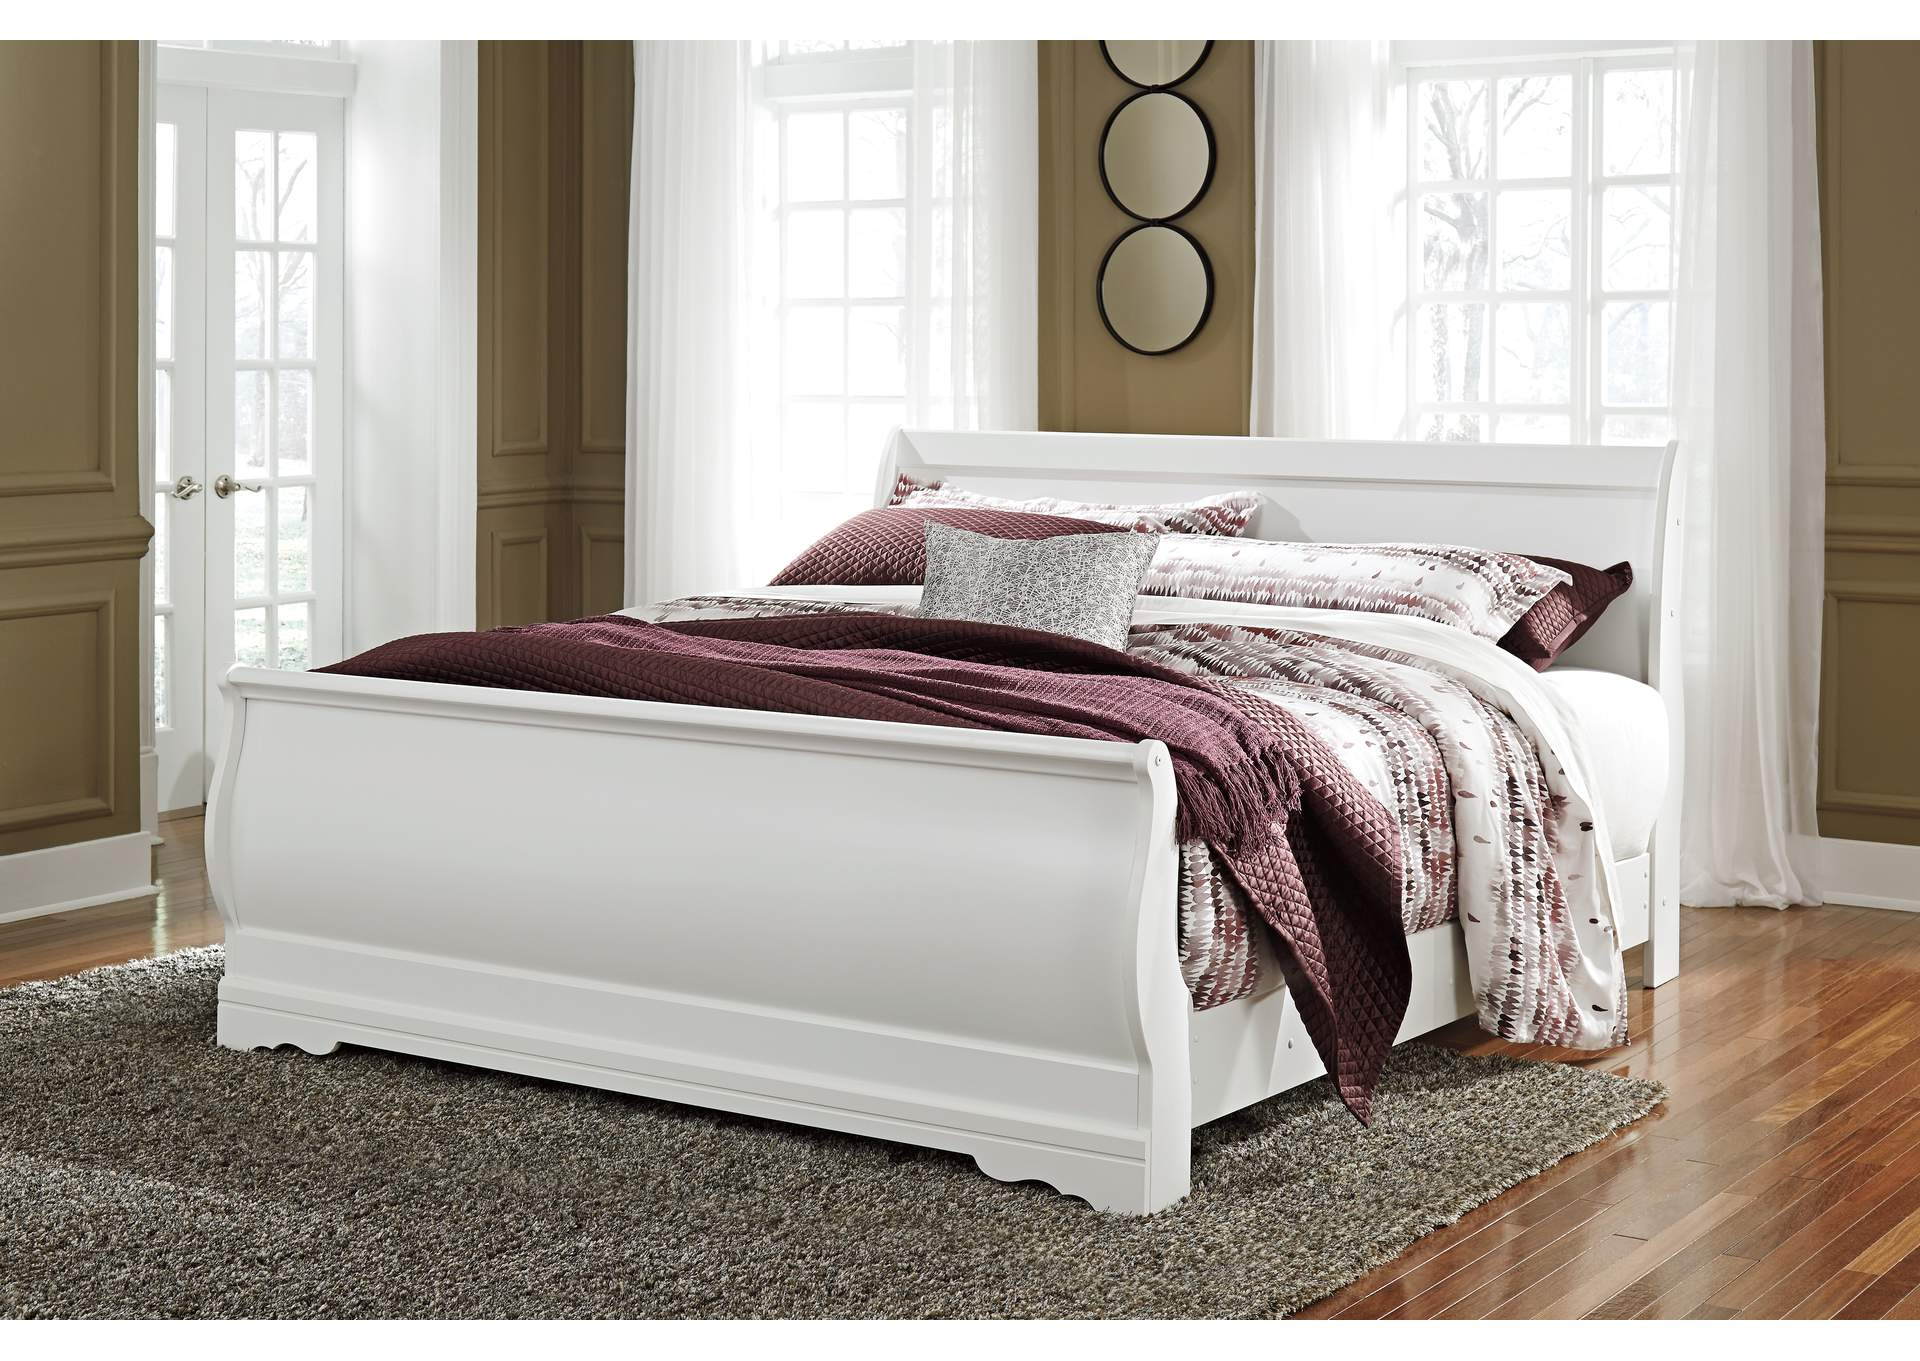 Anarasia White King Sleigh Bed,ABF Signature Design by Ashley